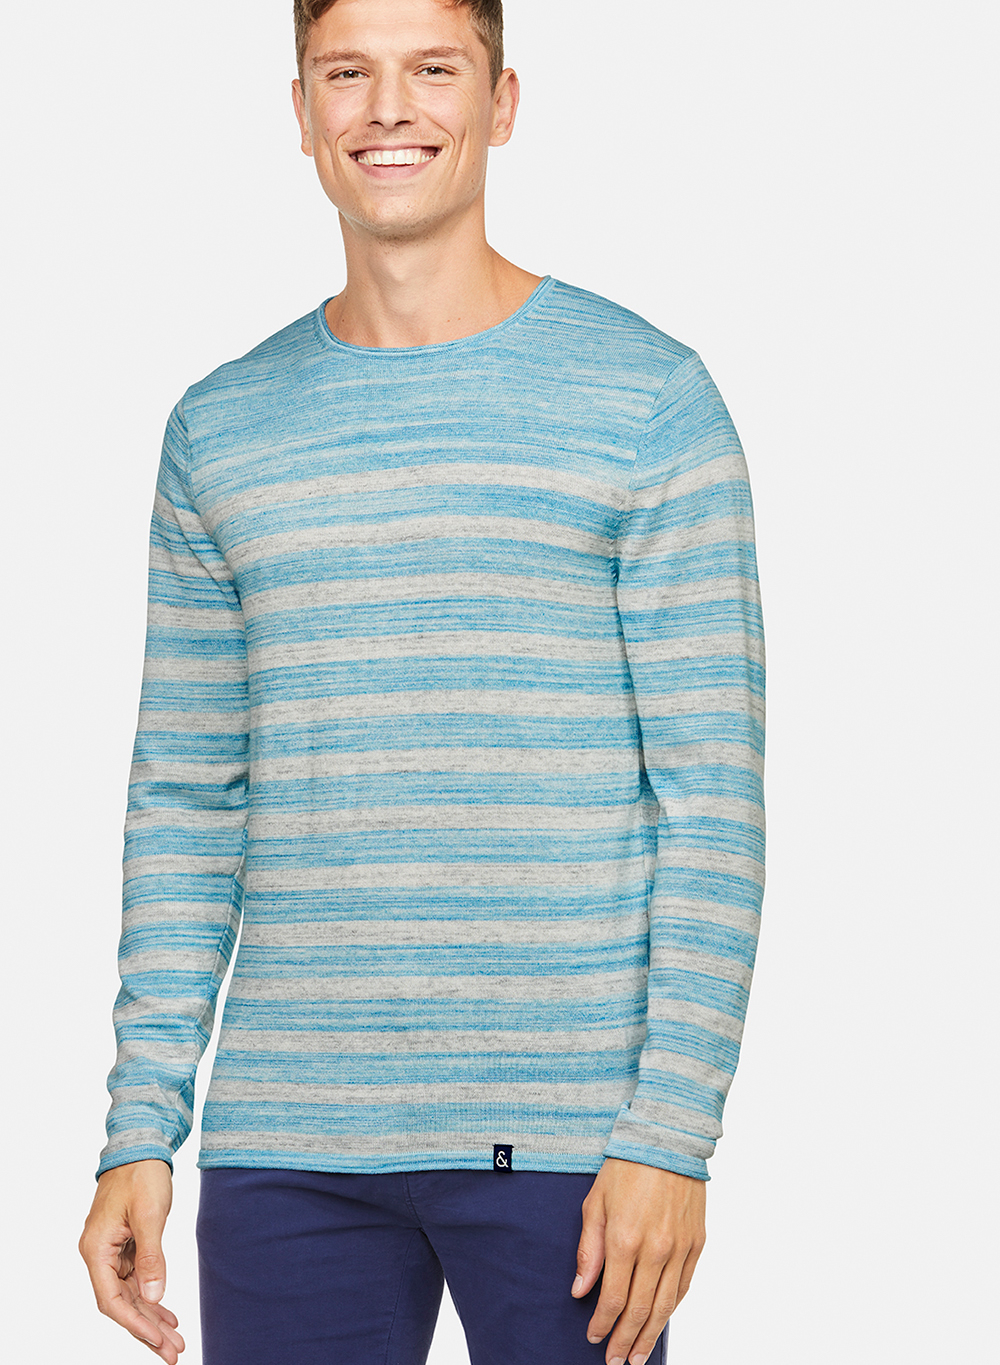 geringelter Pullover in hellblau von Colours and Sons